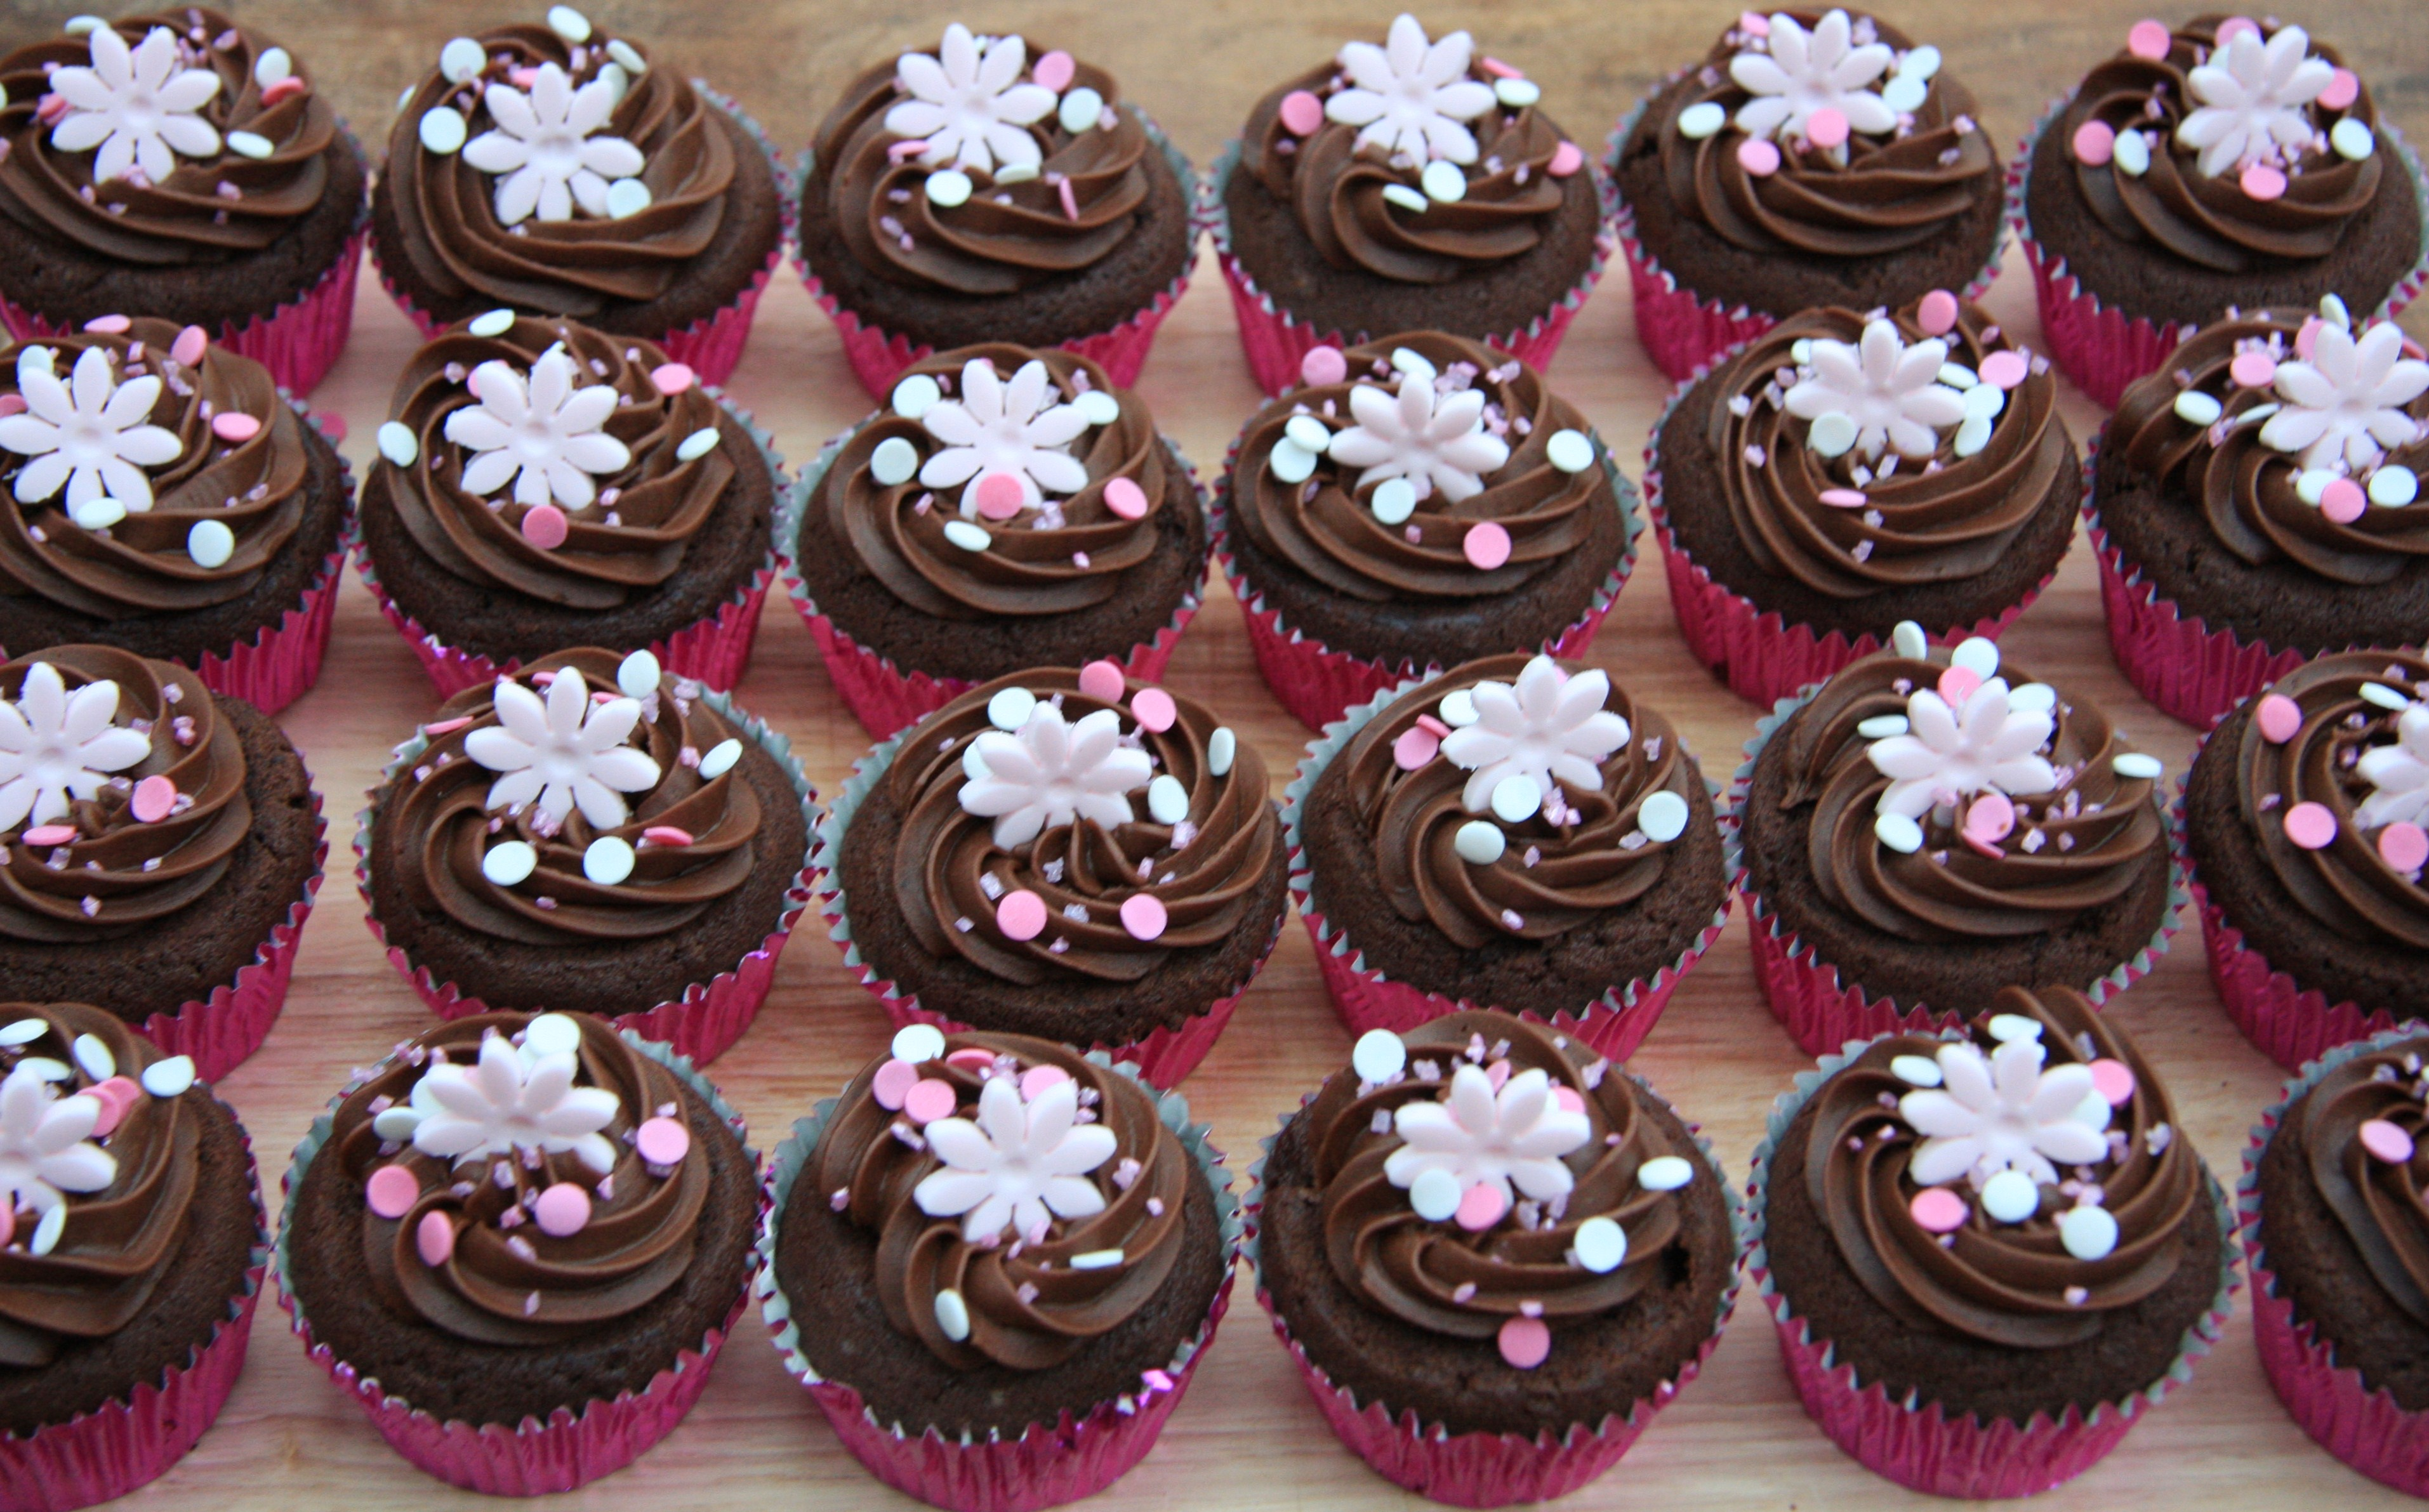 Chocolate Party Cupcakes With Pink Flower Decorations Lovinghomemade